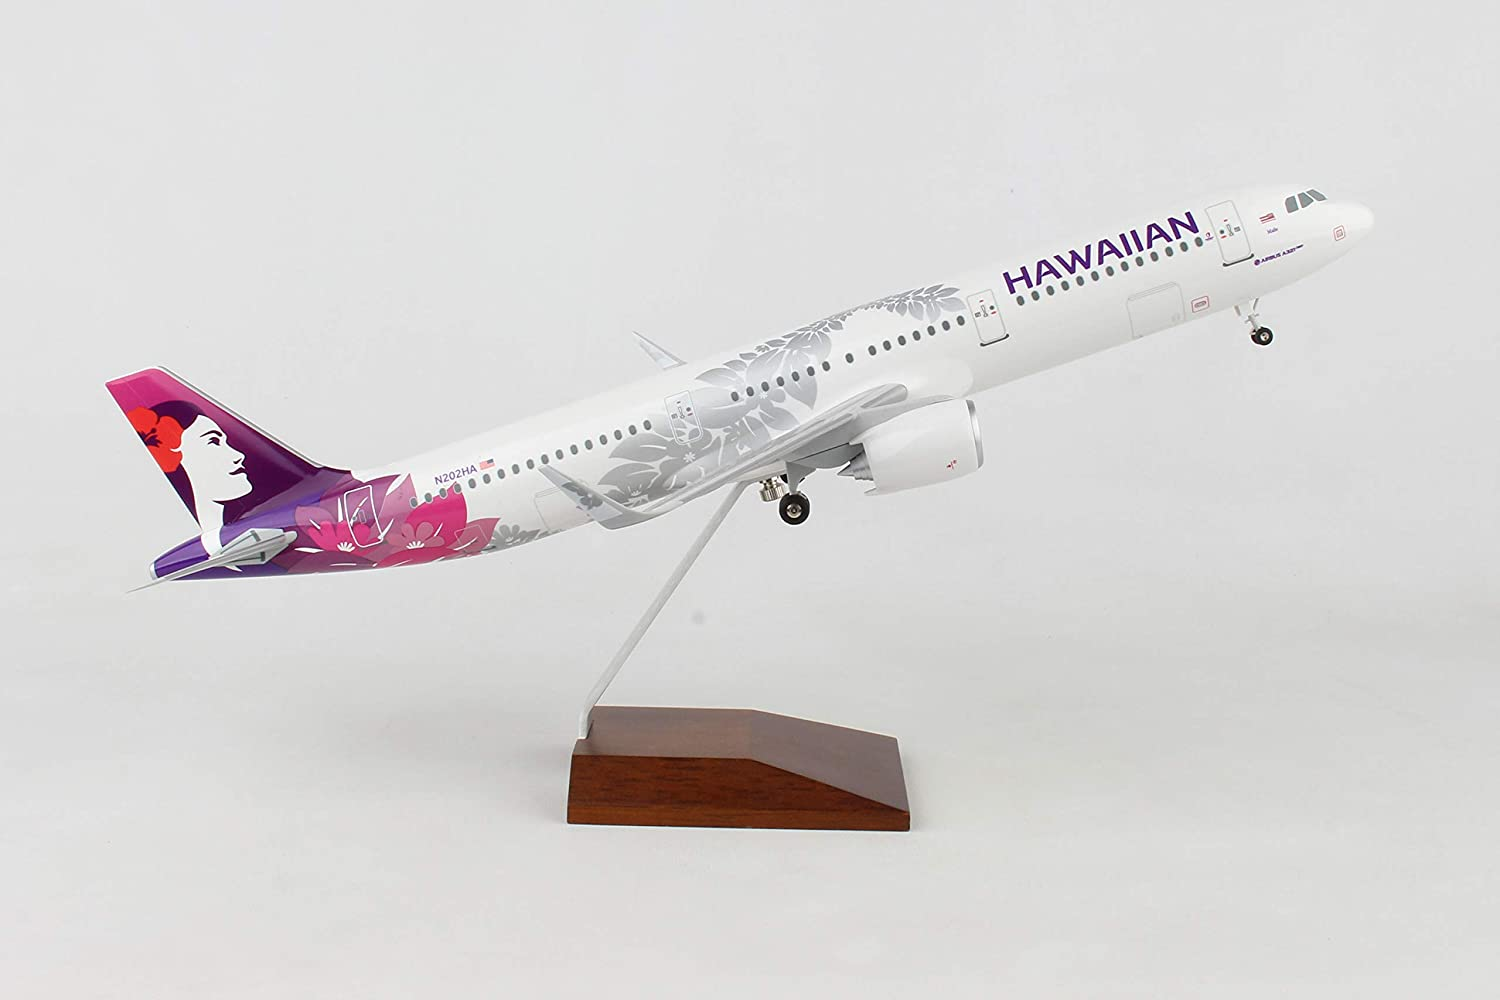 Daron Skymarks Hawaiian Airlines A321 Neo 1//100 with Wooden Base